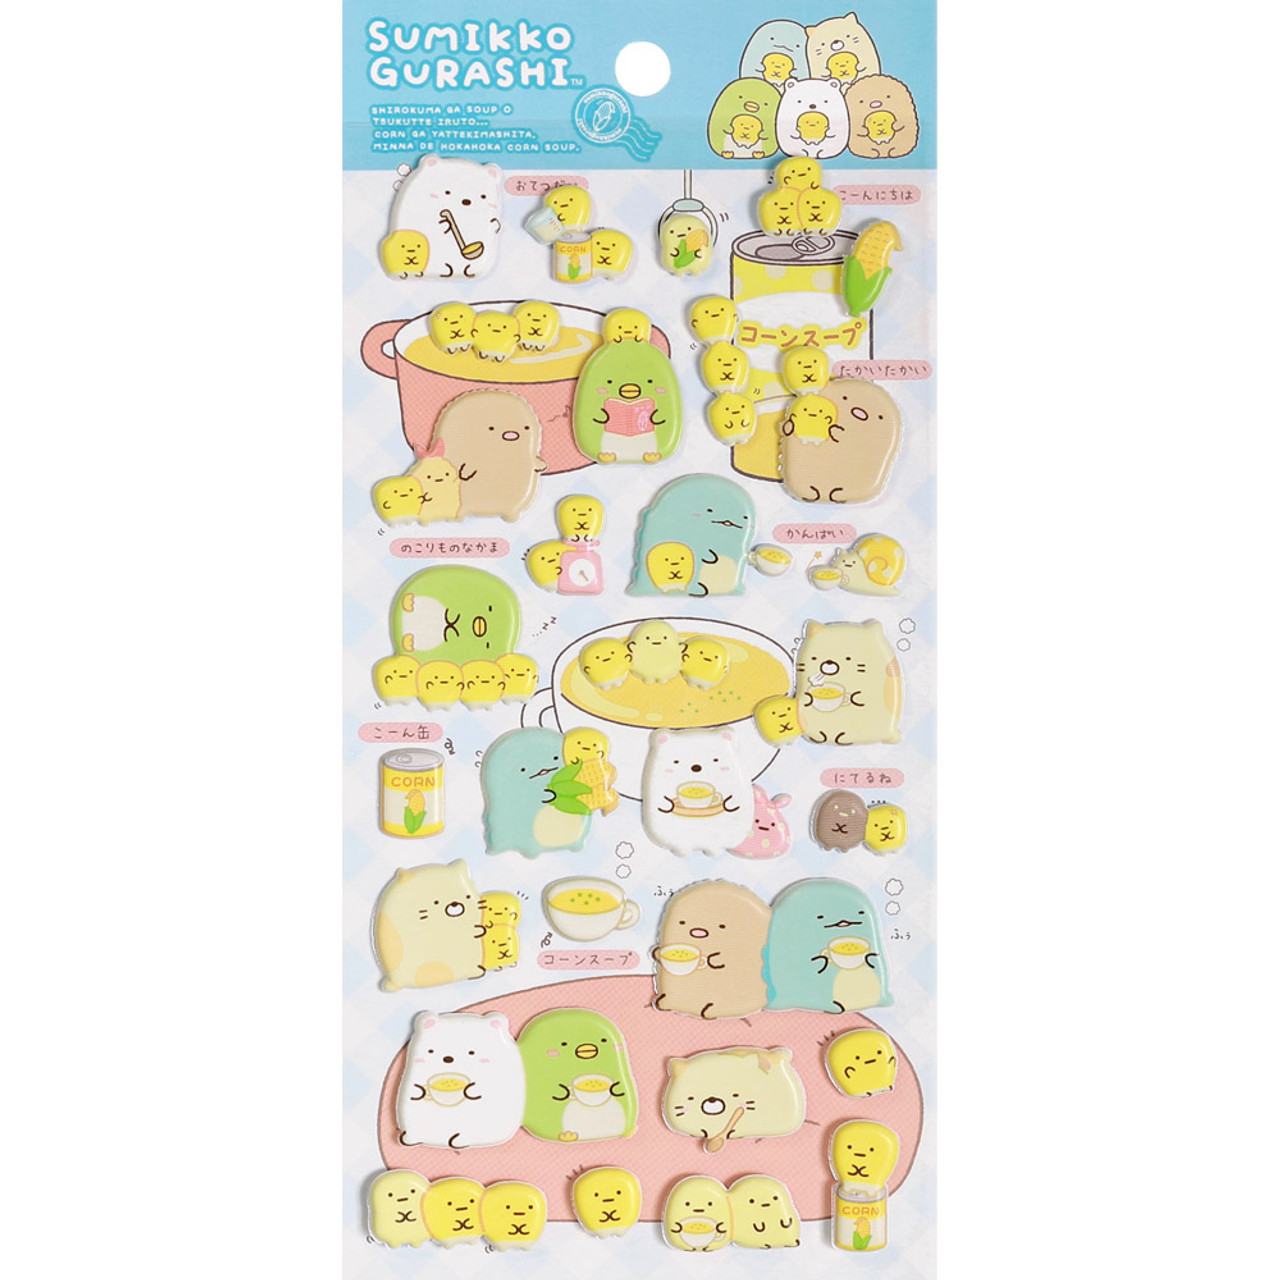 Sumikko Gurashi Funny Collection Sticker SE49202 - Drink ( Front View )